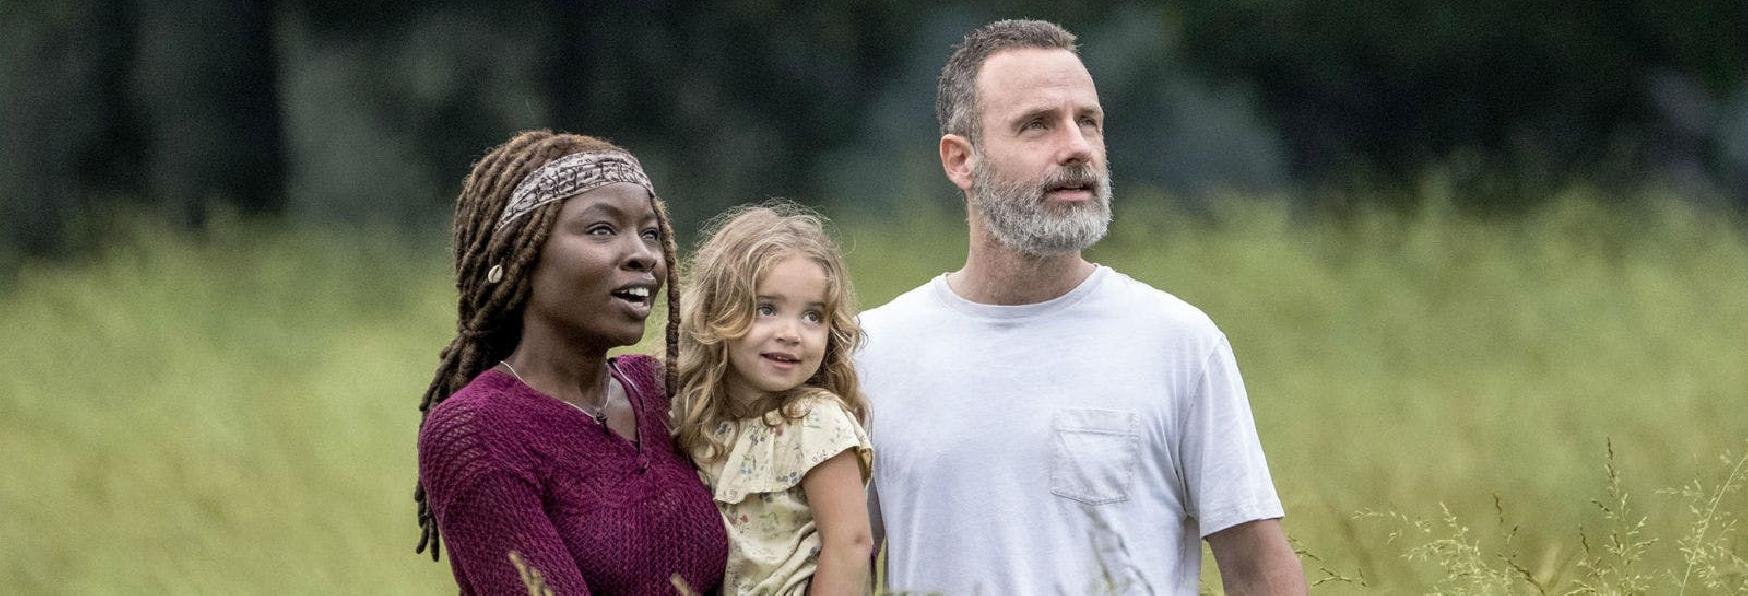 The Walking Dead: AMC motiva lo Spoiler sull'Addio di Rick